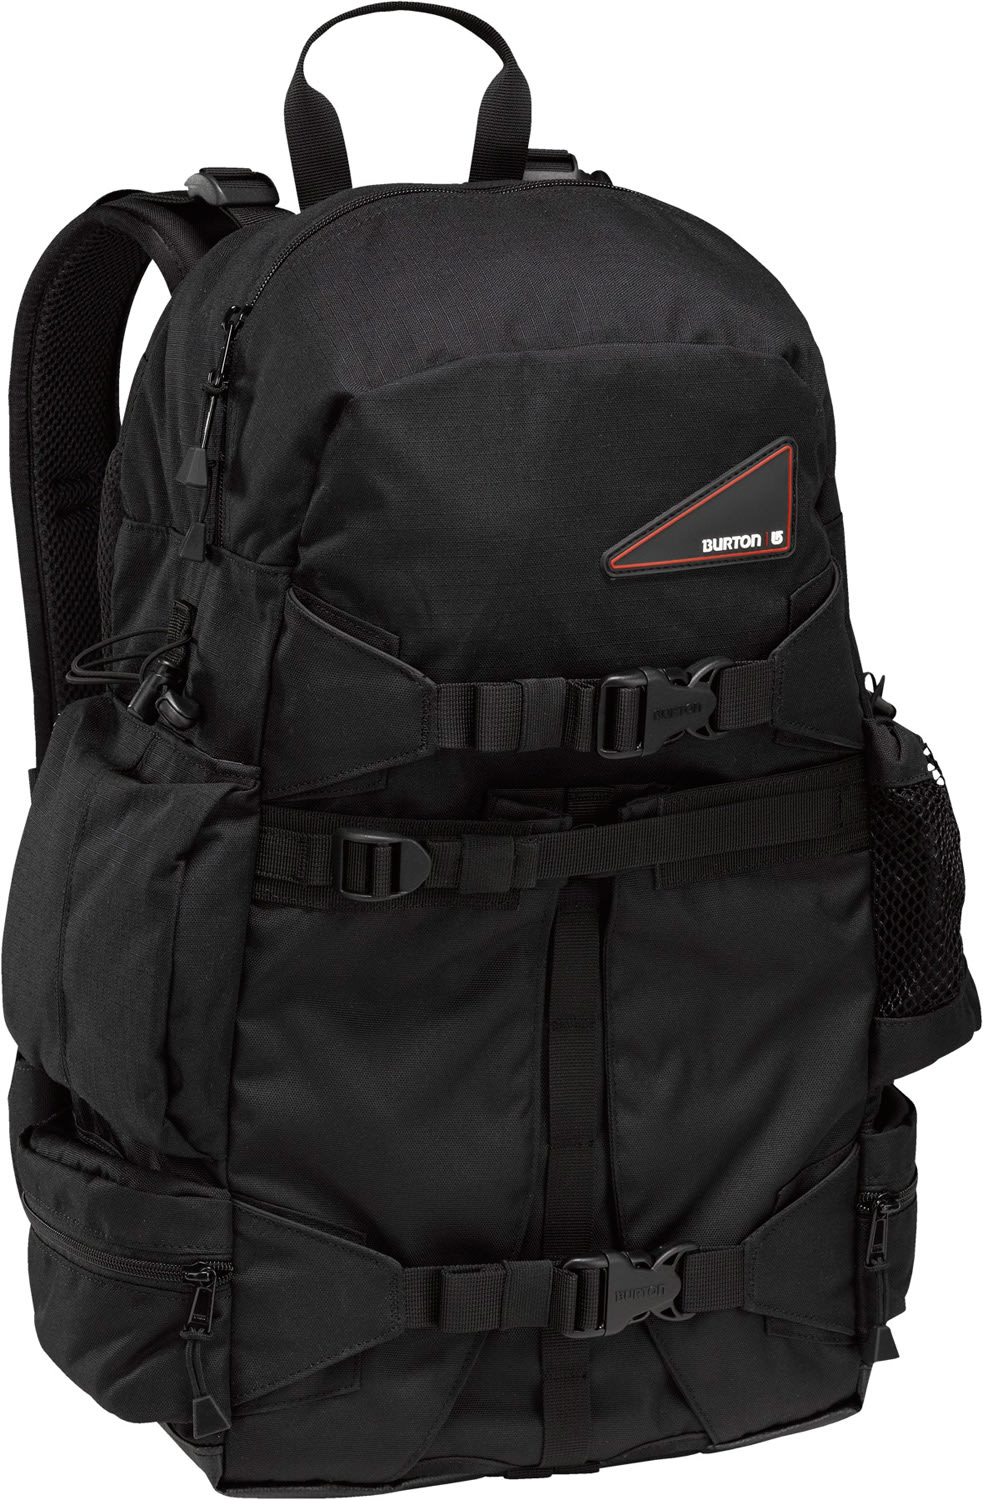 Burton Zoom Pack Backpack Blotto Black/Red 26L